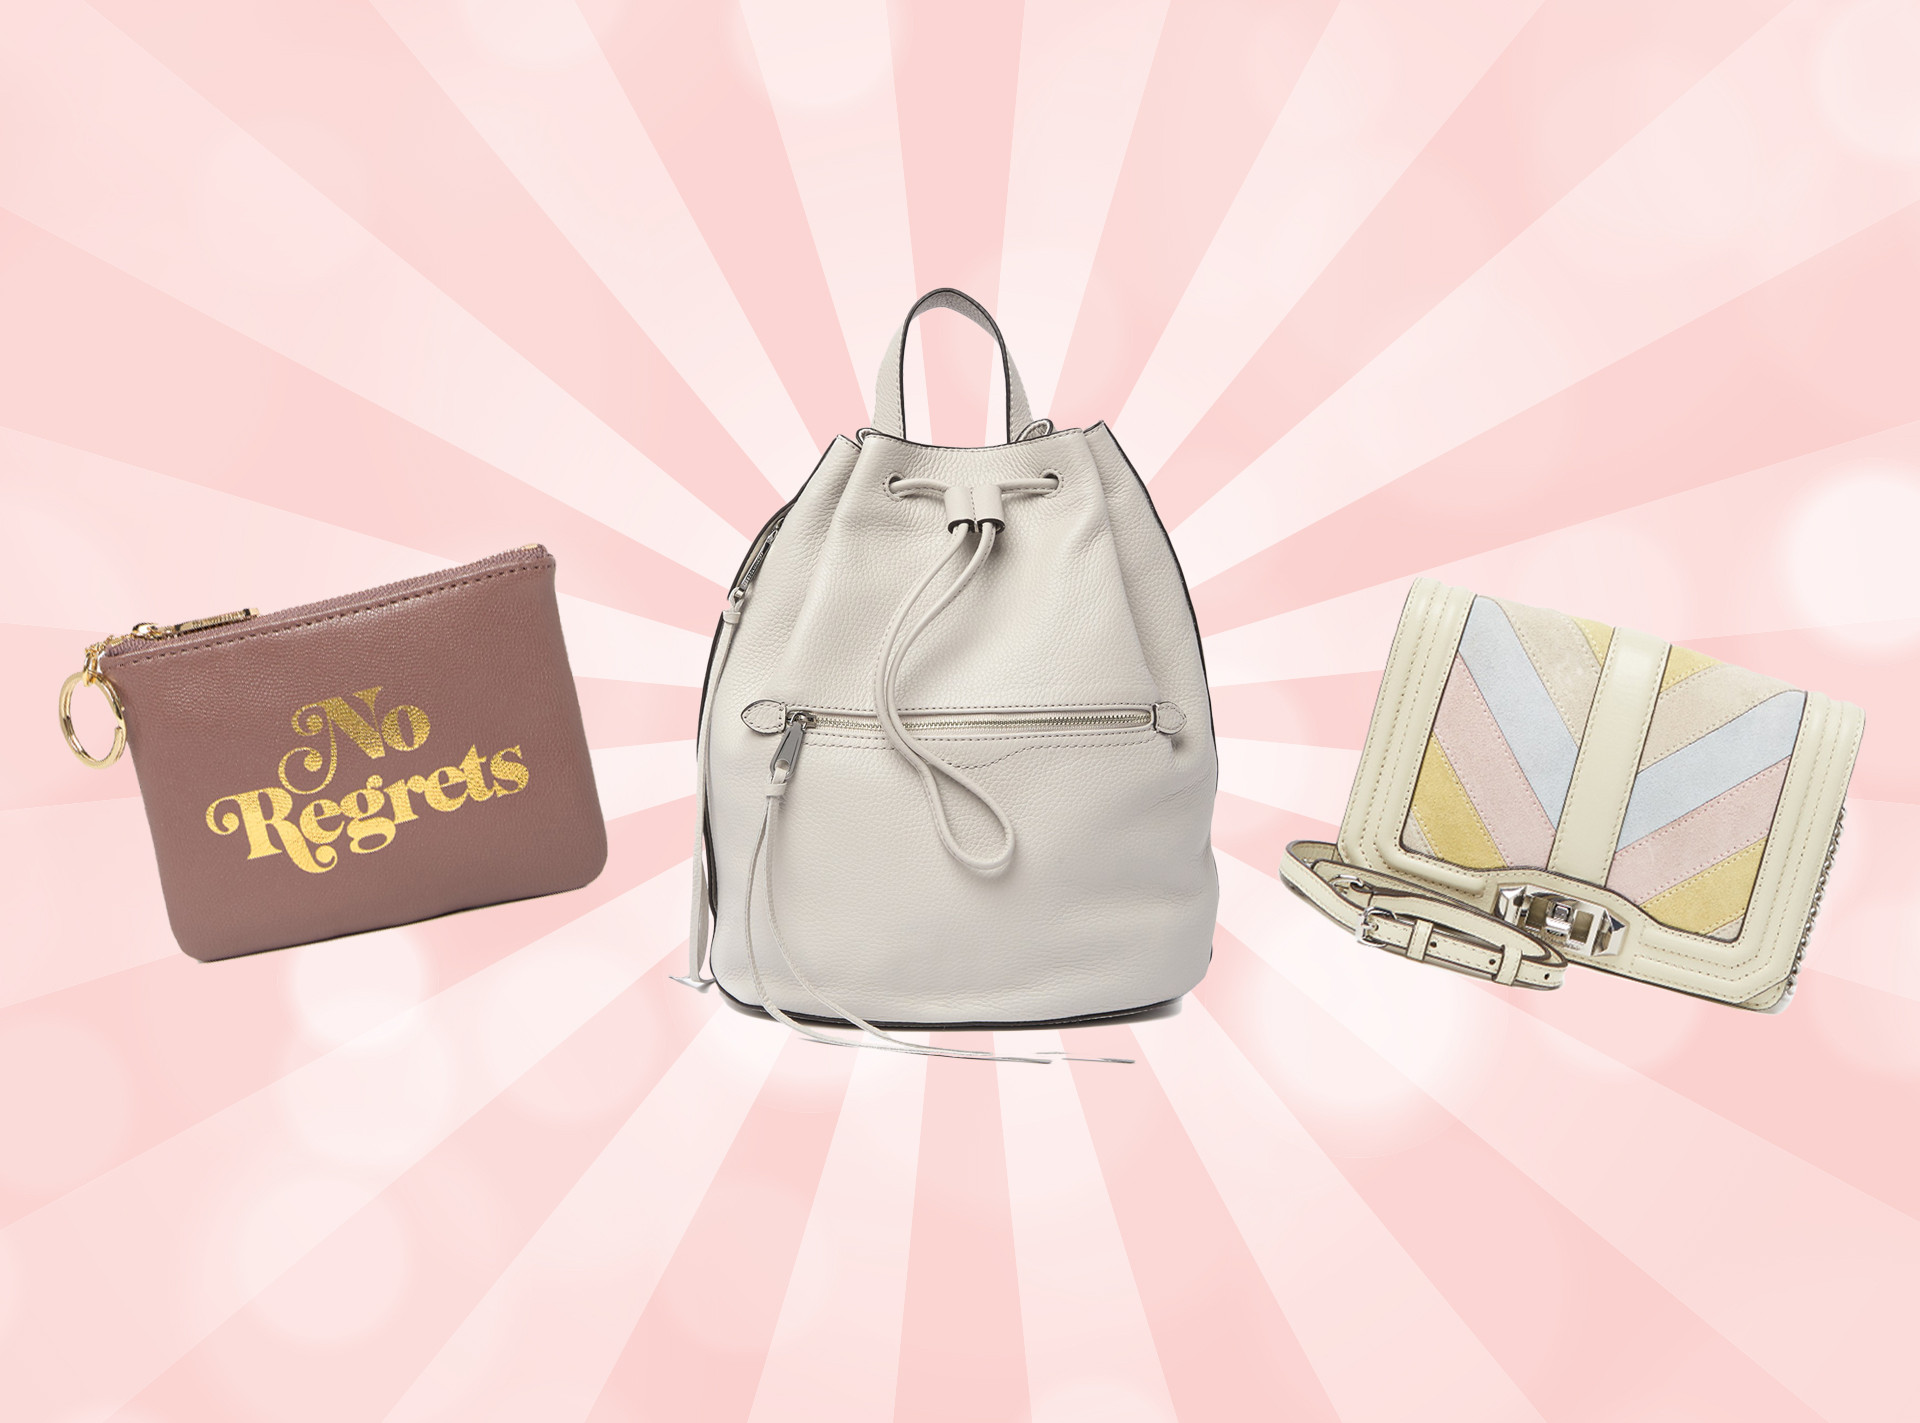 Our Top 5 Picks From the Rebecca Minkoff Flash Sale